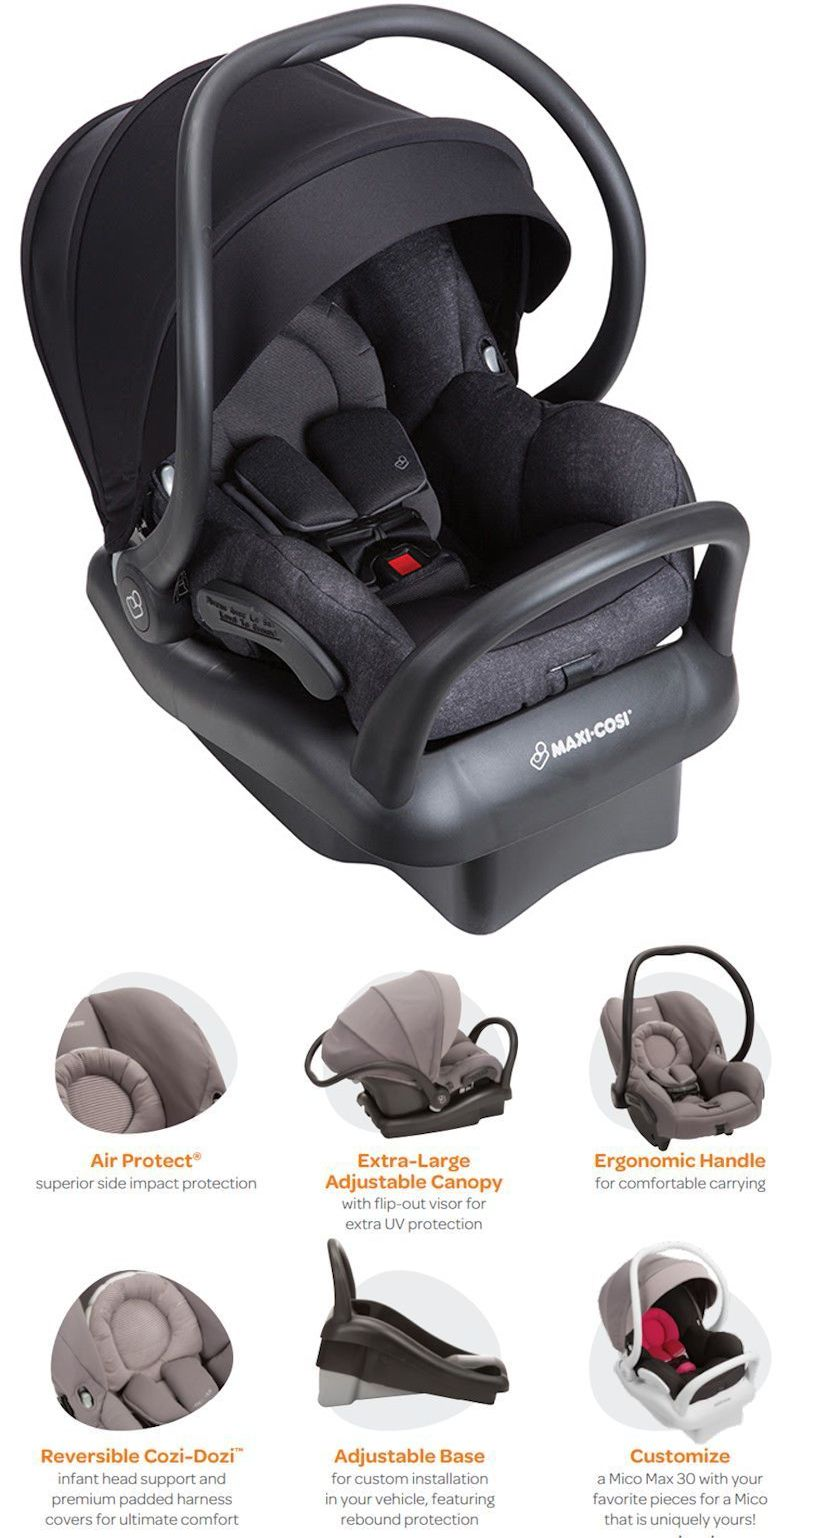 Infant Car Seat 5 20 Lbs 66696 Maxi Cosi Mico Max 30 Air Protect Baby W Nomad Black New BUY IT NOW ONLY 27999 On EBay